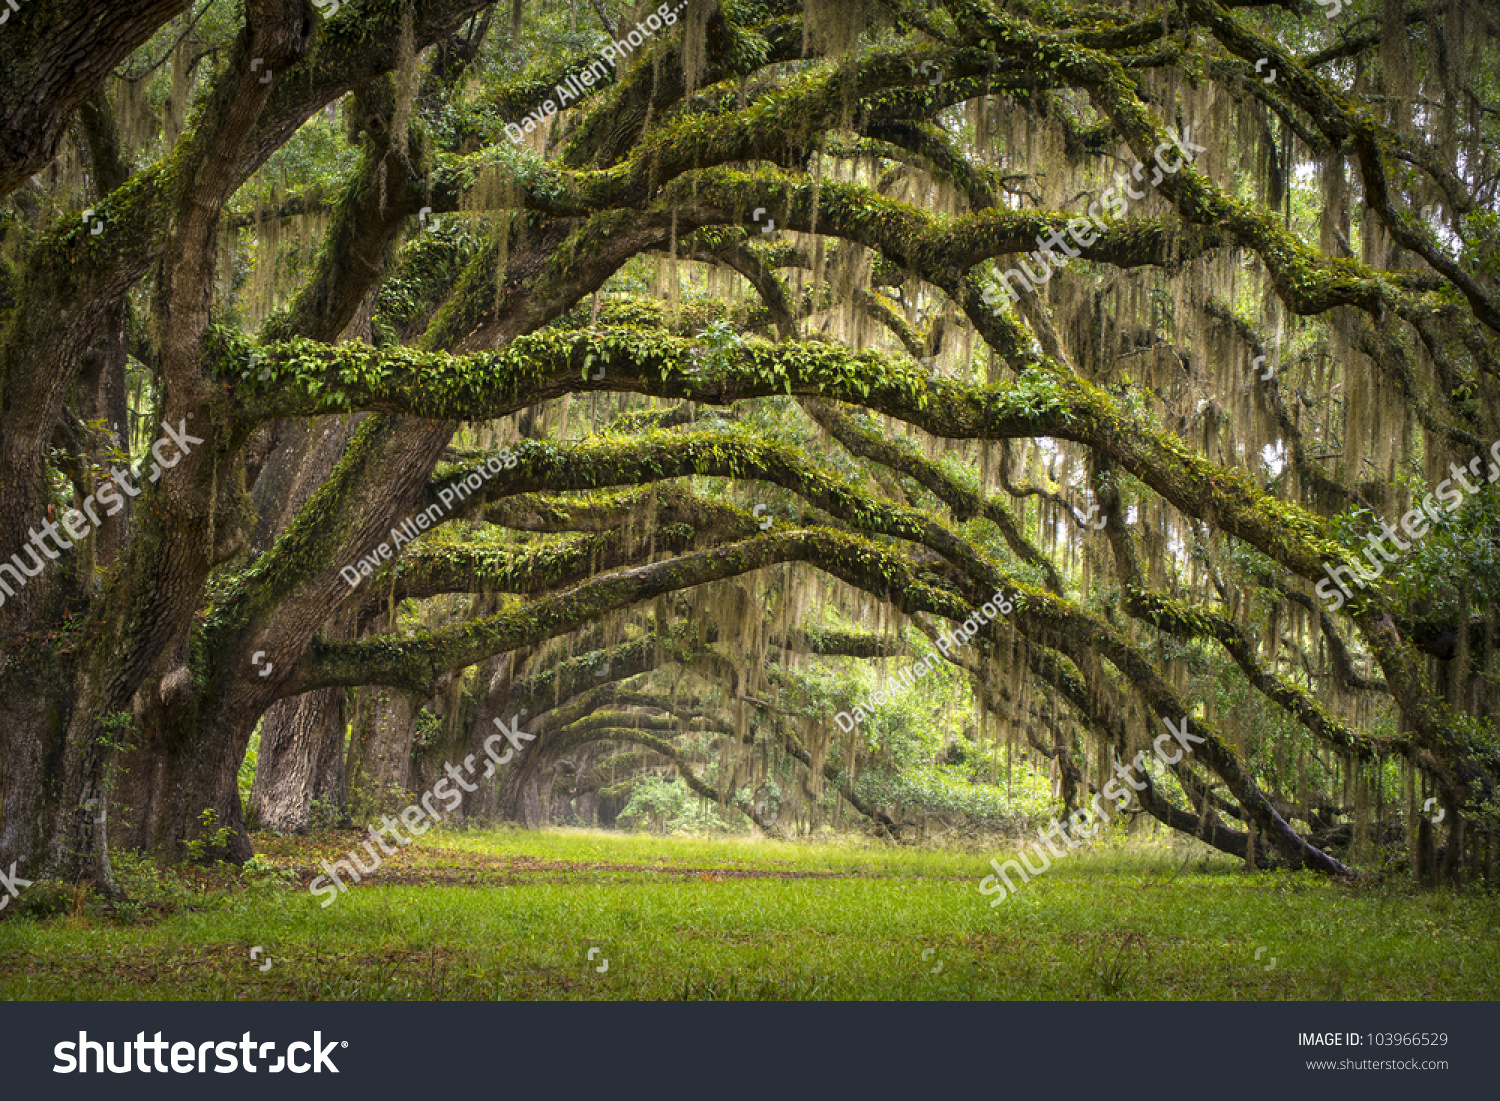 Oaks avenue charleston sc plantation live stock photo for Landscaping plants south carolina